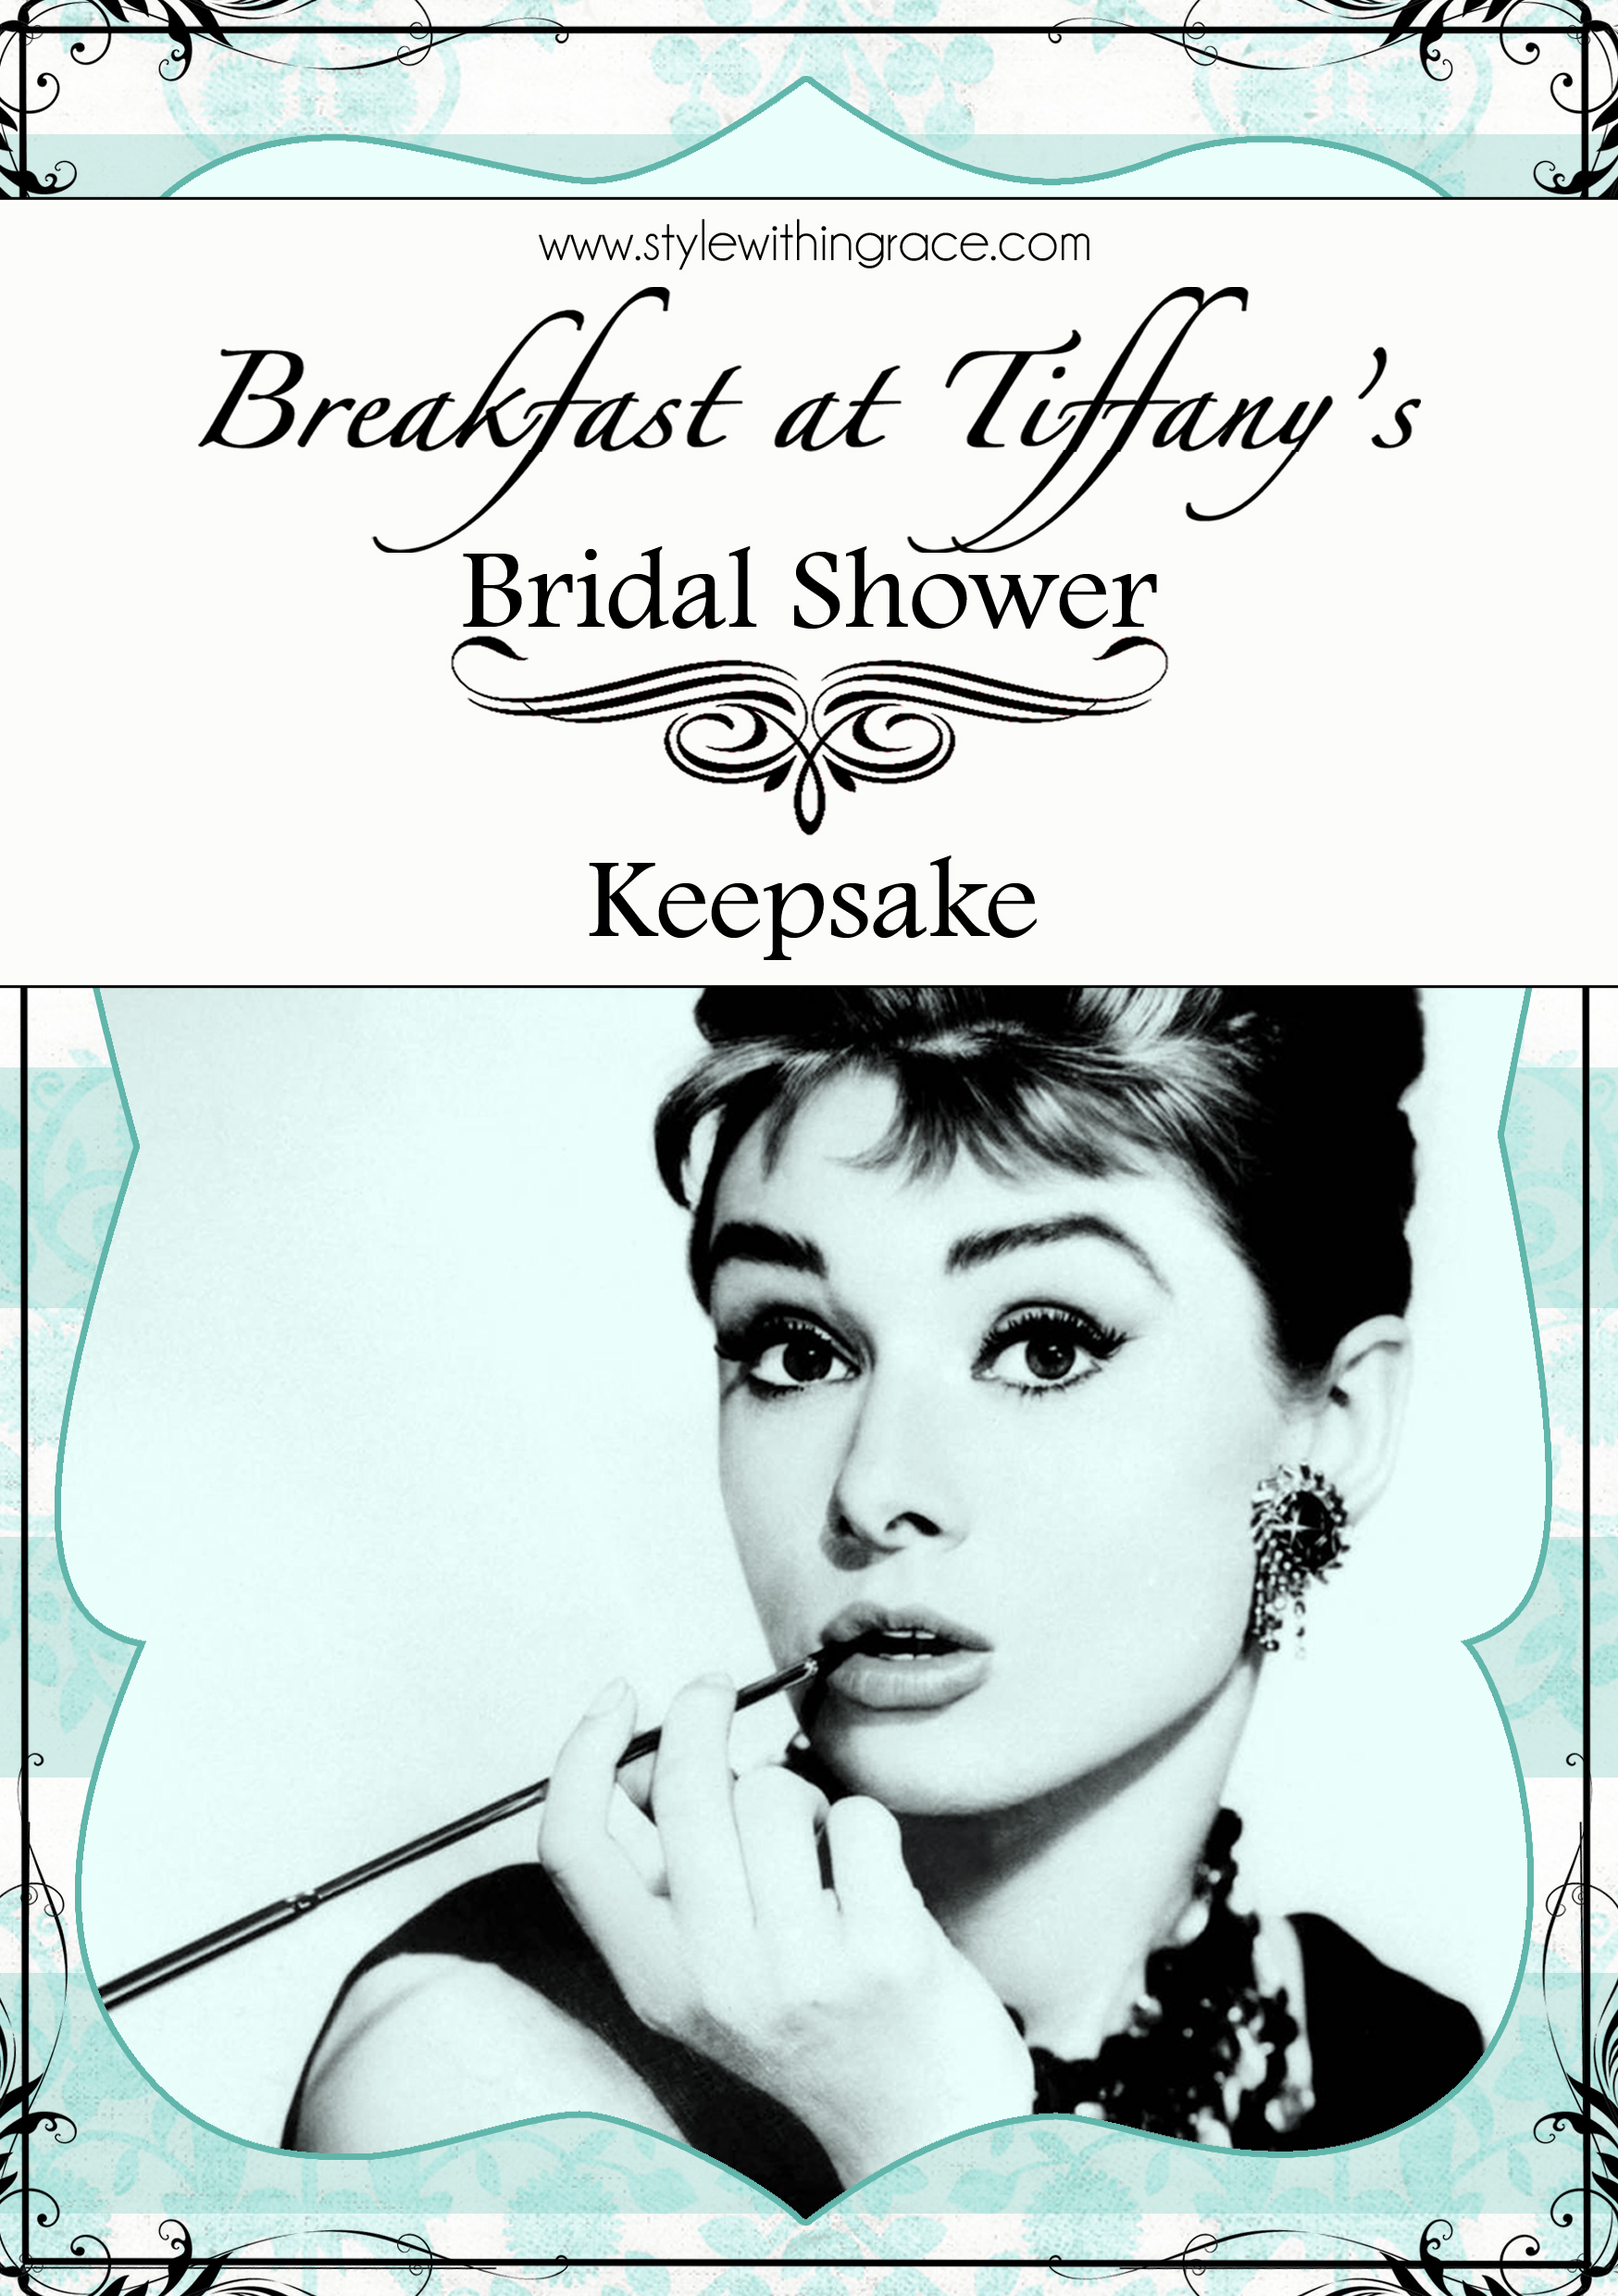 A great DIY Breakfast at Tiffany's themed bridal shower keepsake for the bride to remember her special day that's both cheap and easy.